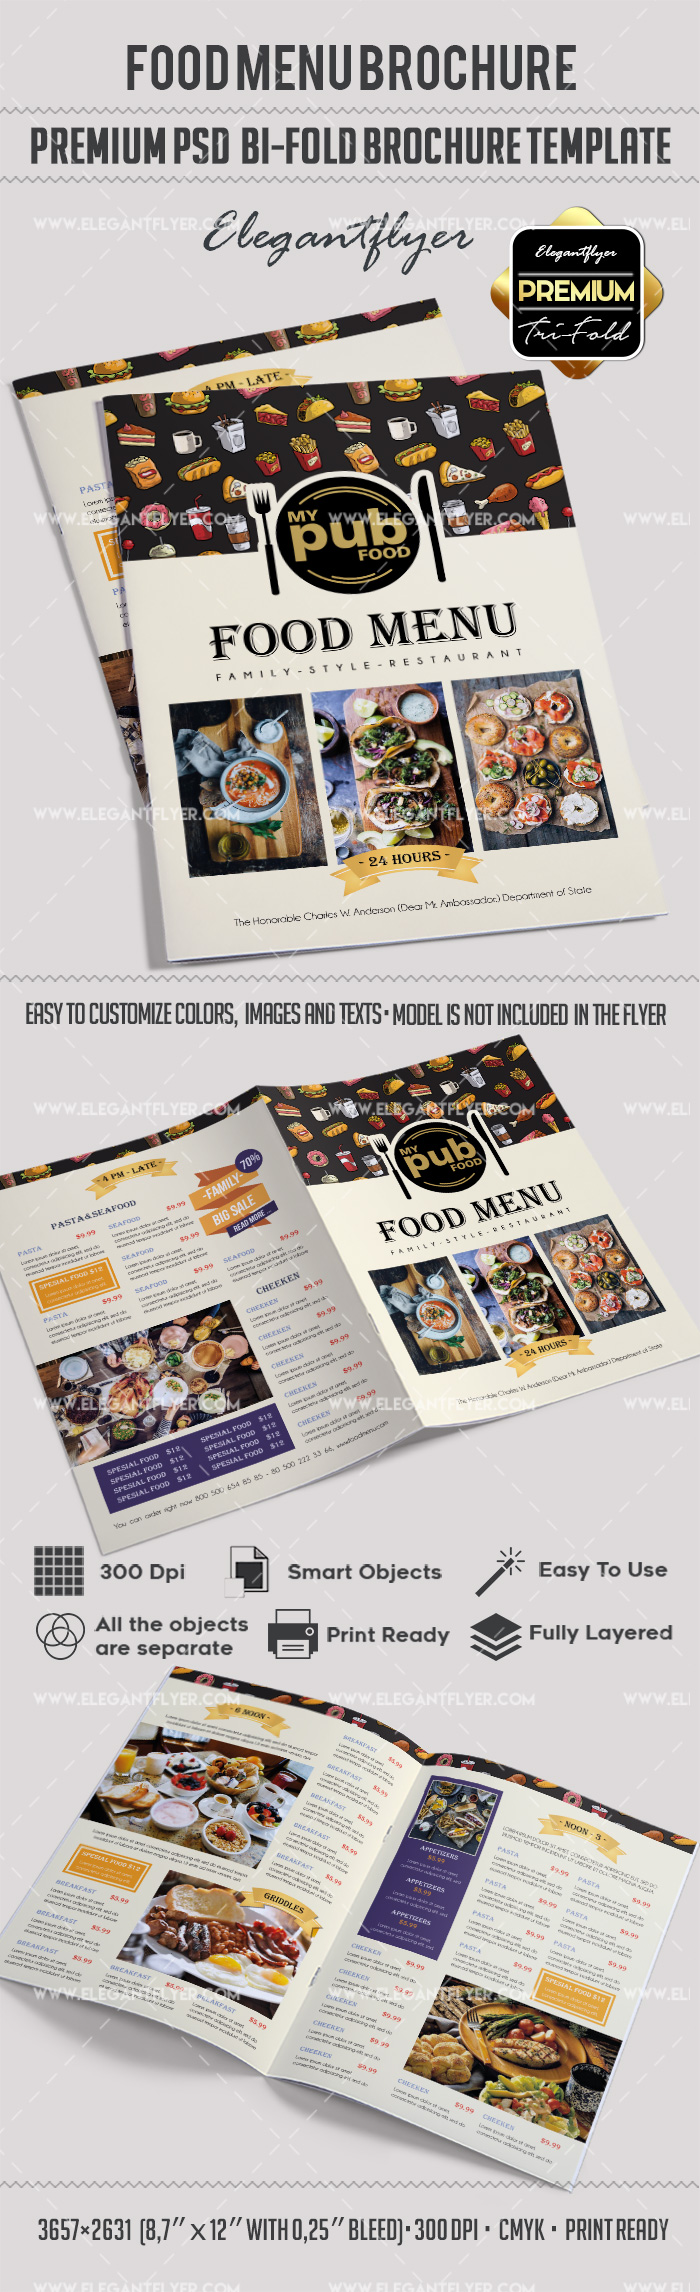 menu brochure template free - food menu brochure template by elegantflyer